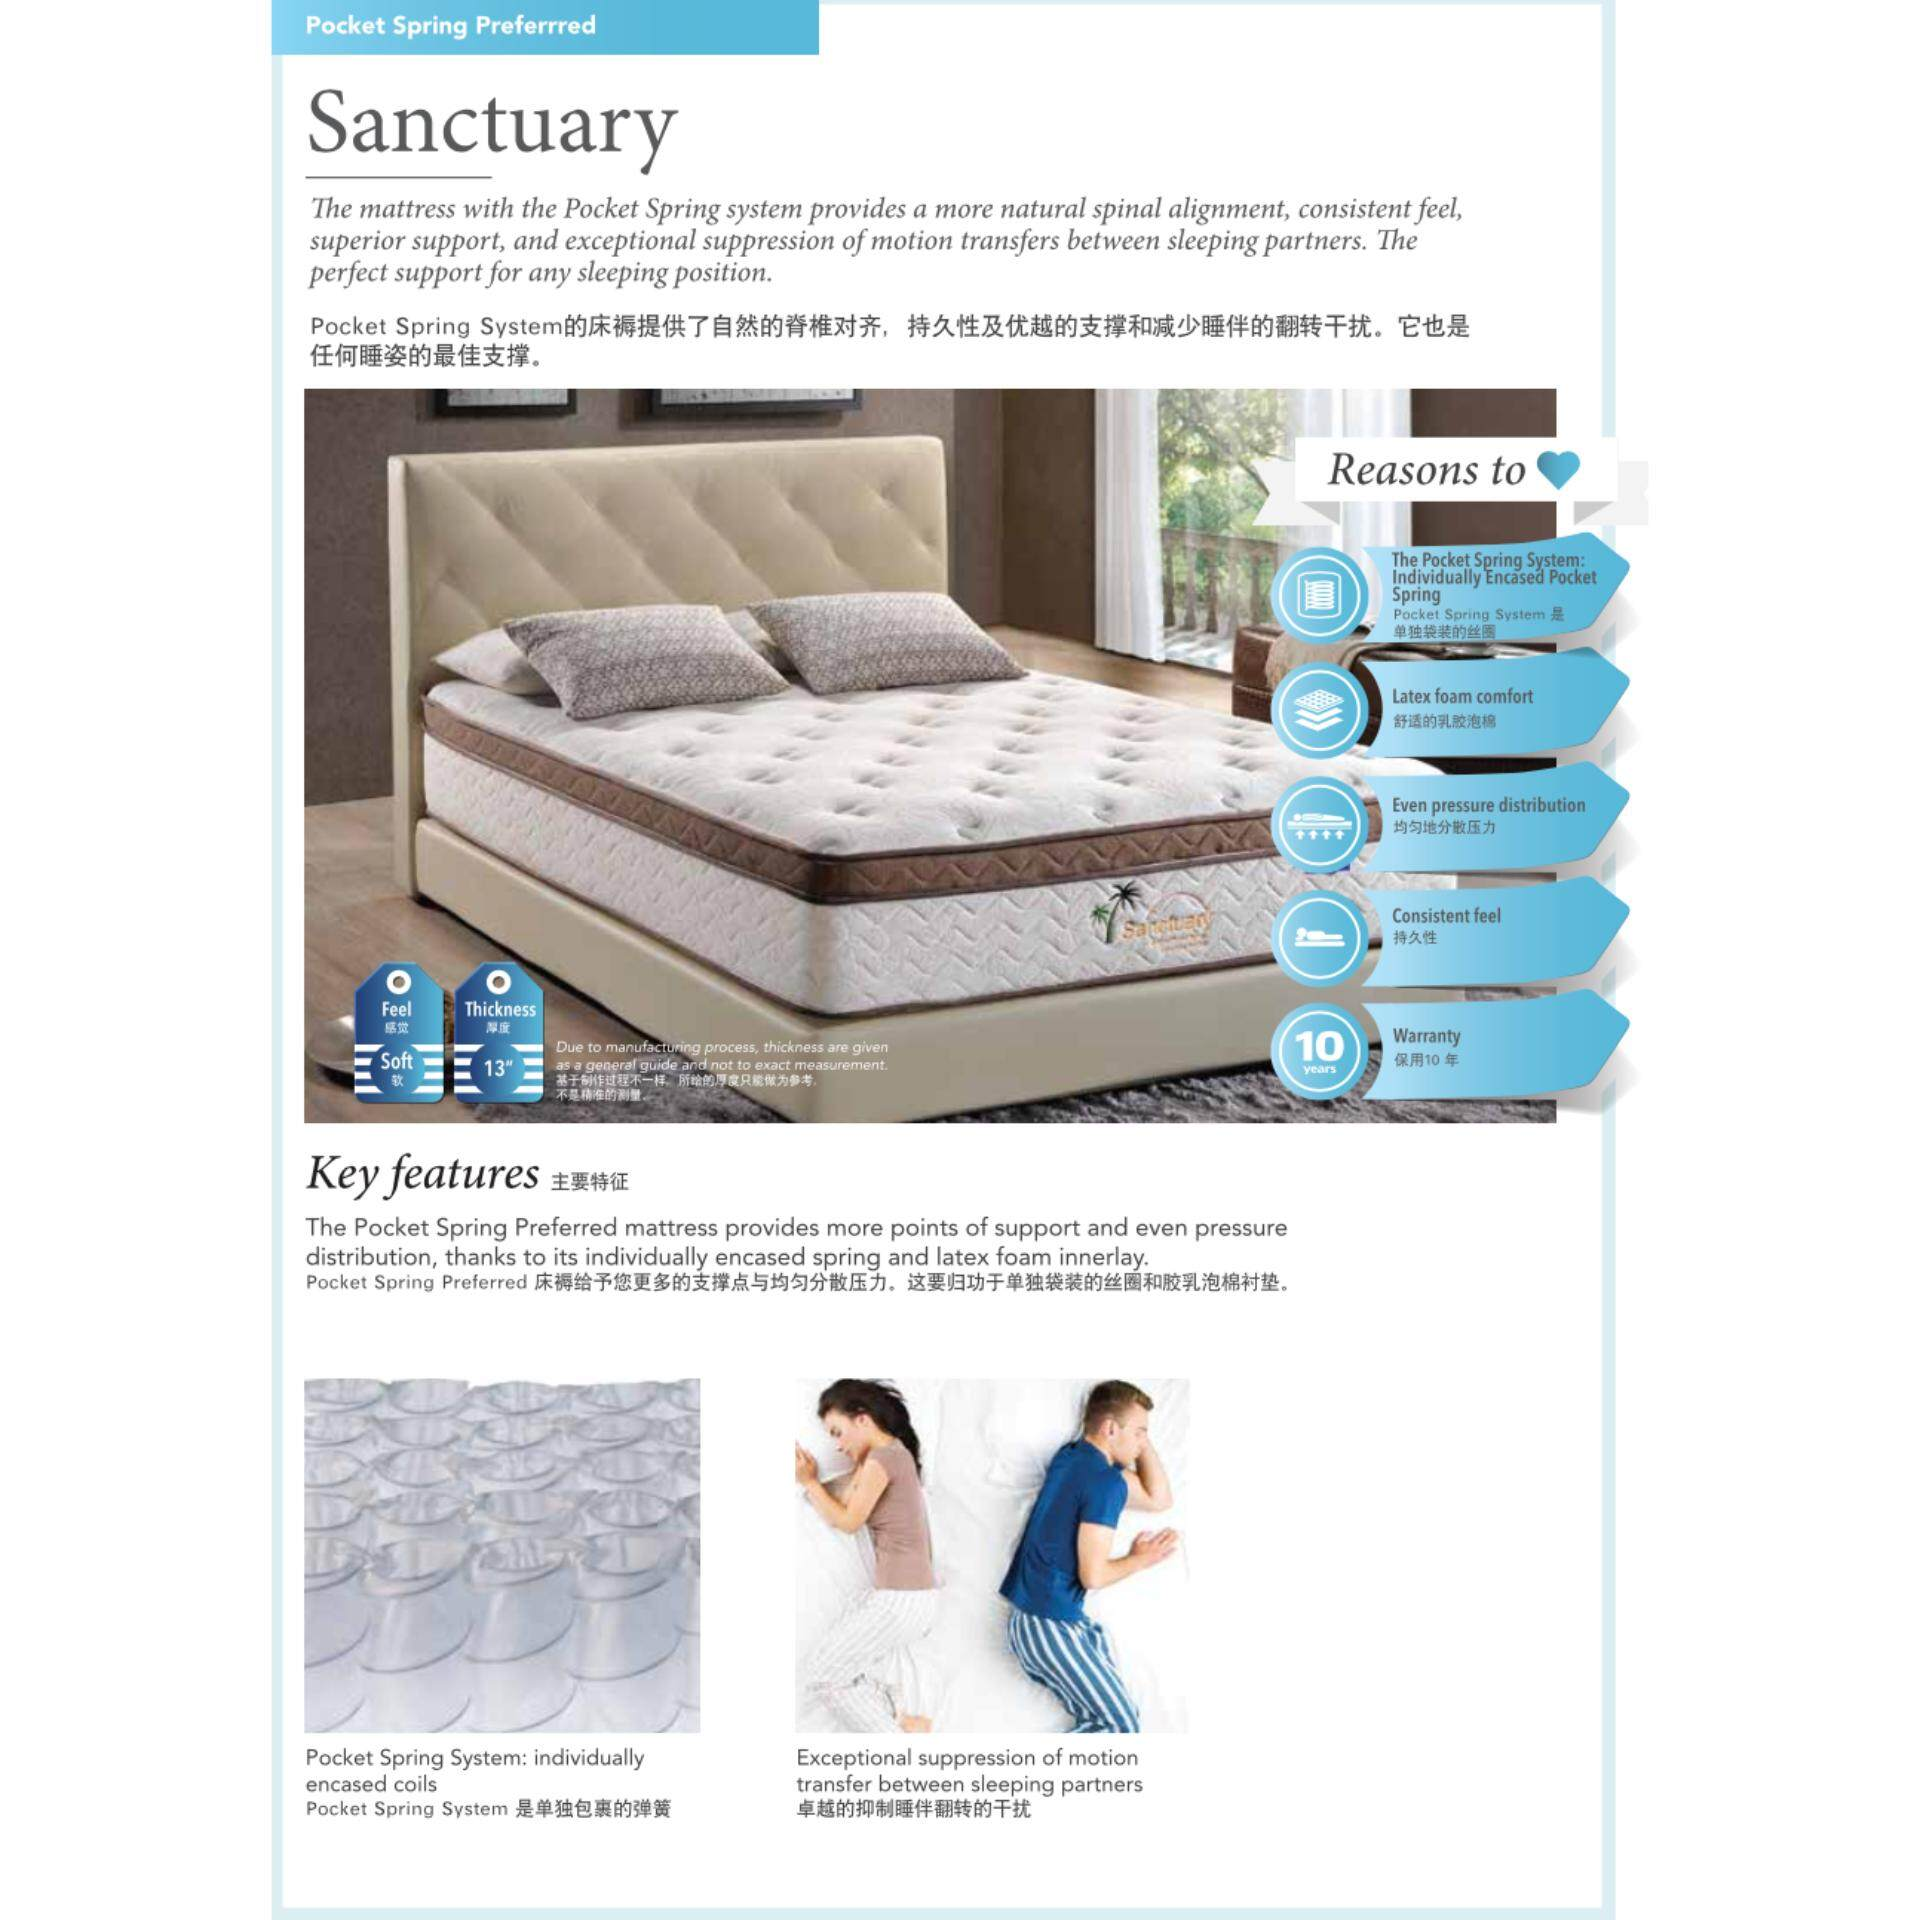 Deco Dreamland Sanctuary Pocket Spring Model 13 Inches Thick MiraCoil Technology Mattress Tilam With 10 Years Warranty